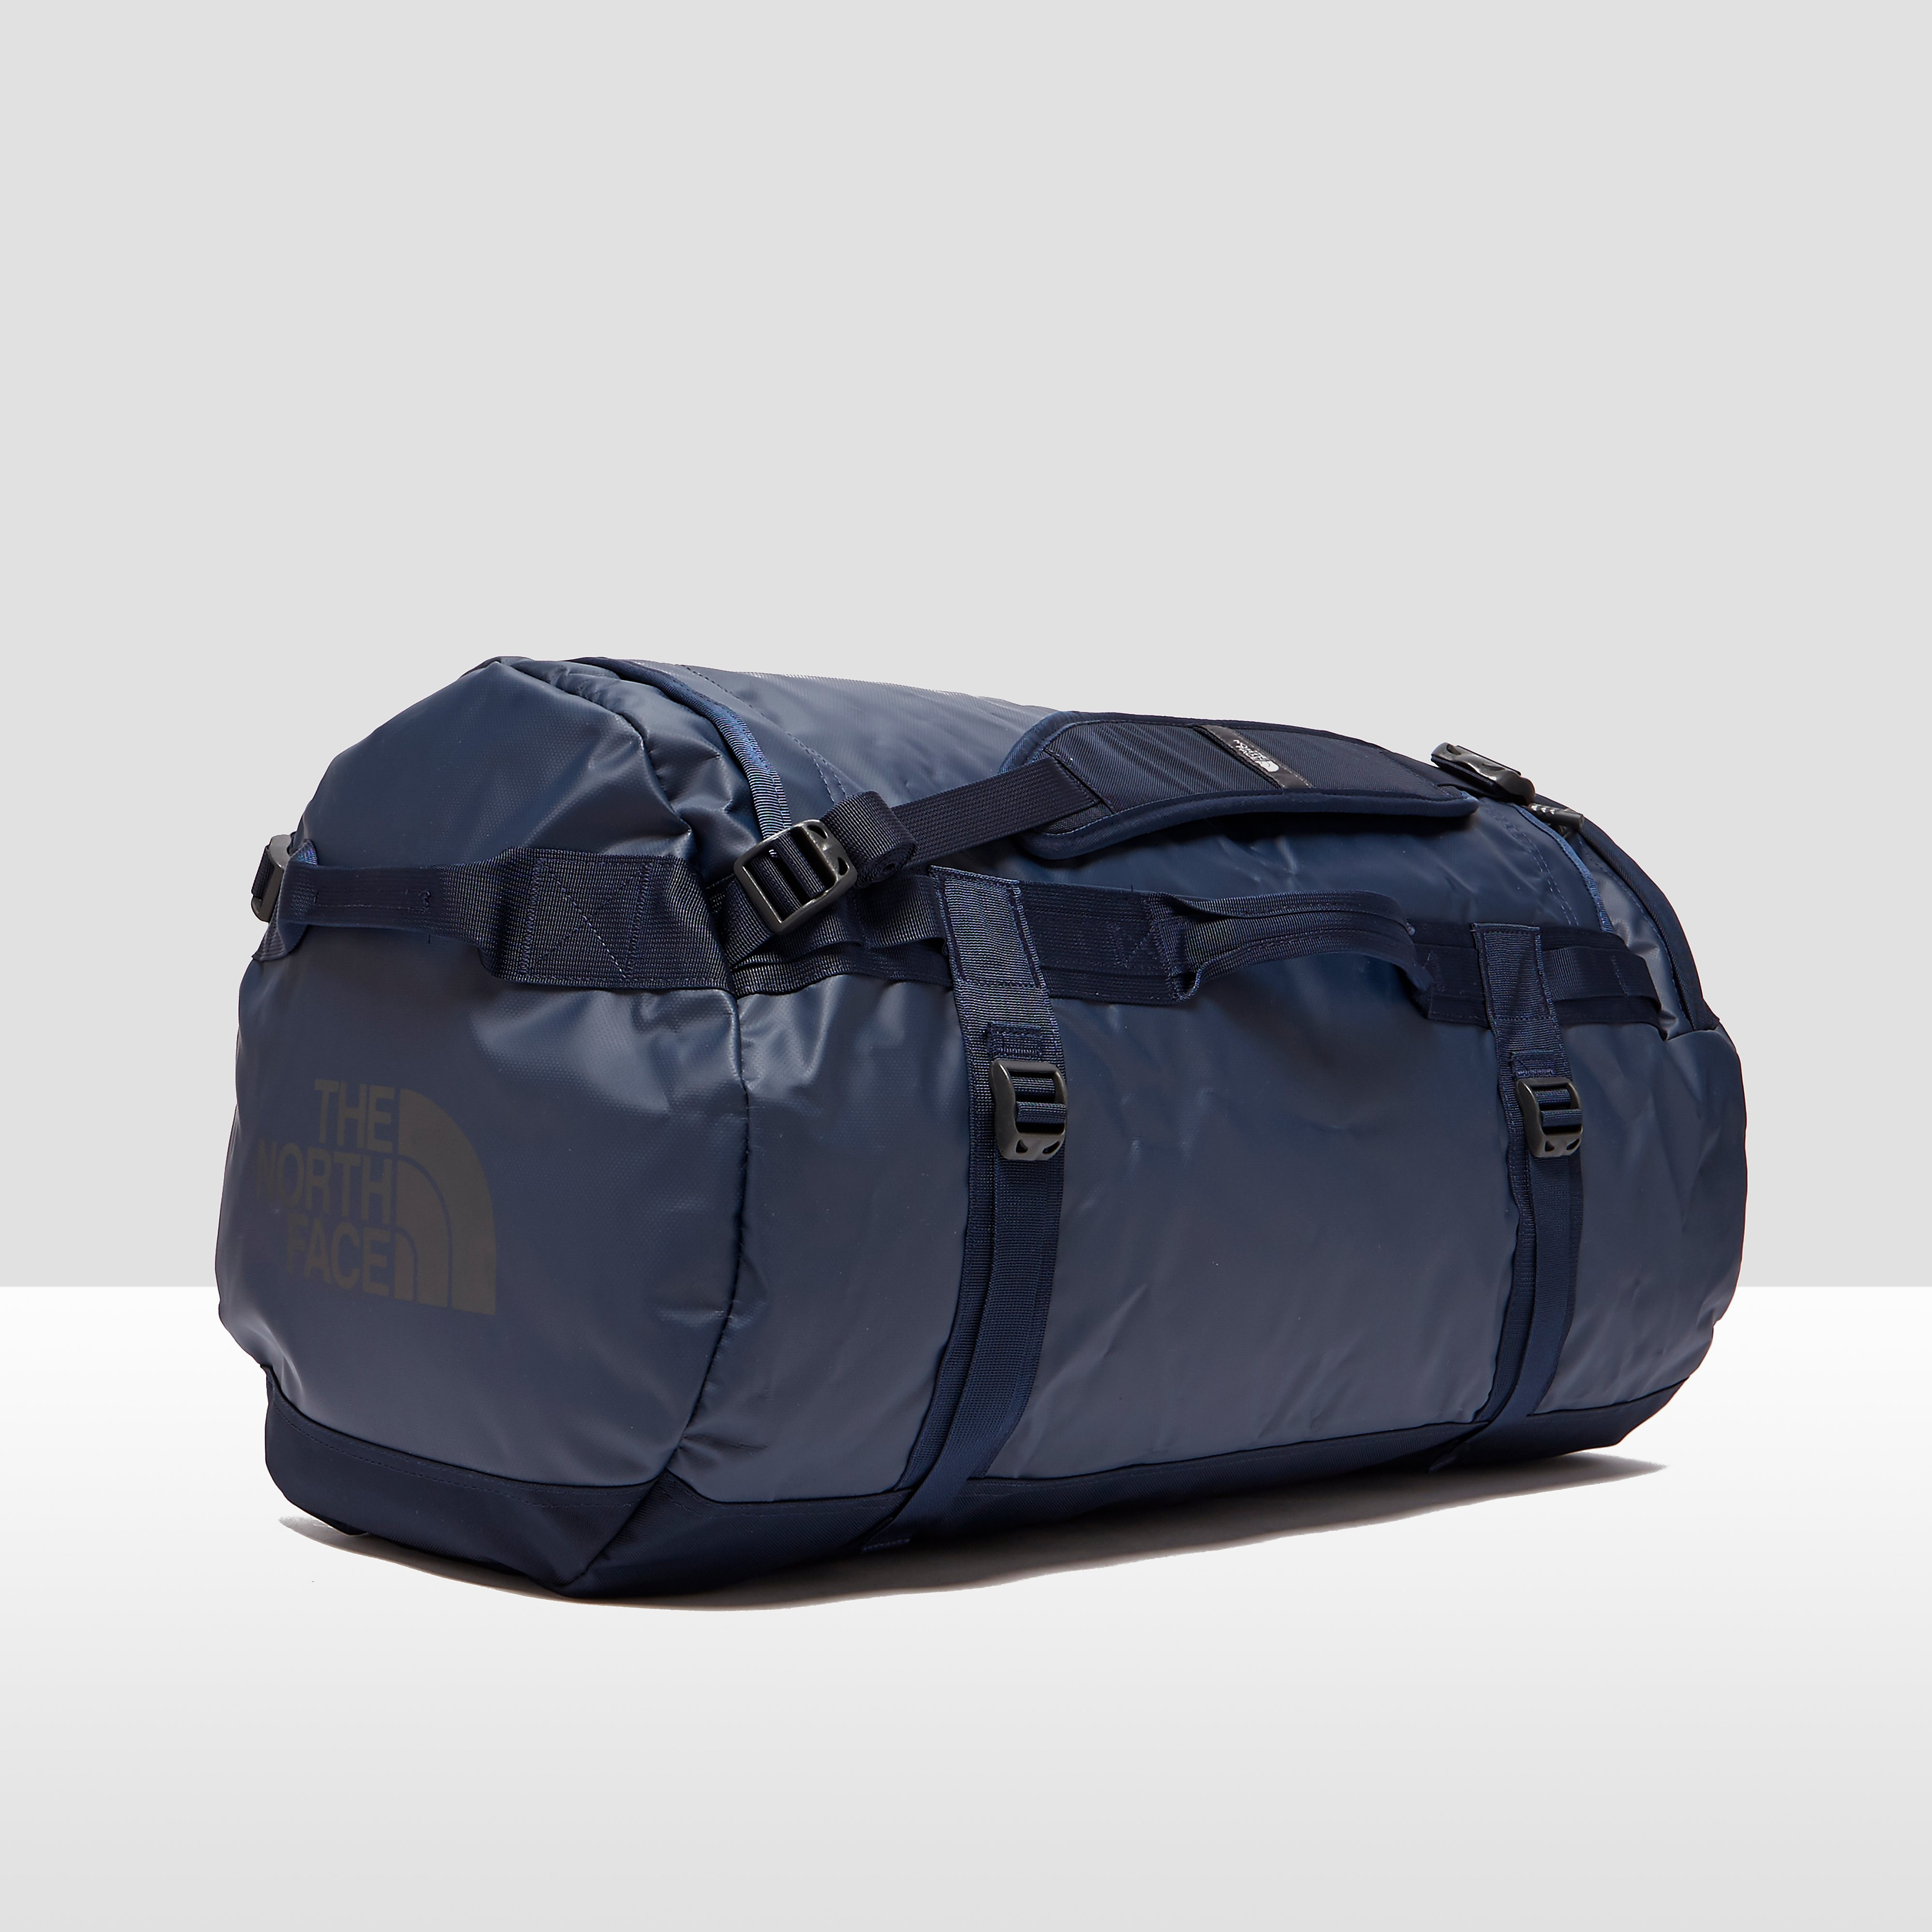 The North Face Base Camp Duffel Bag (Large)